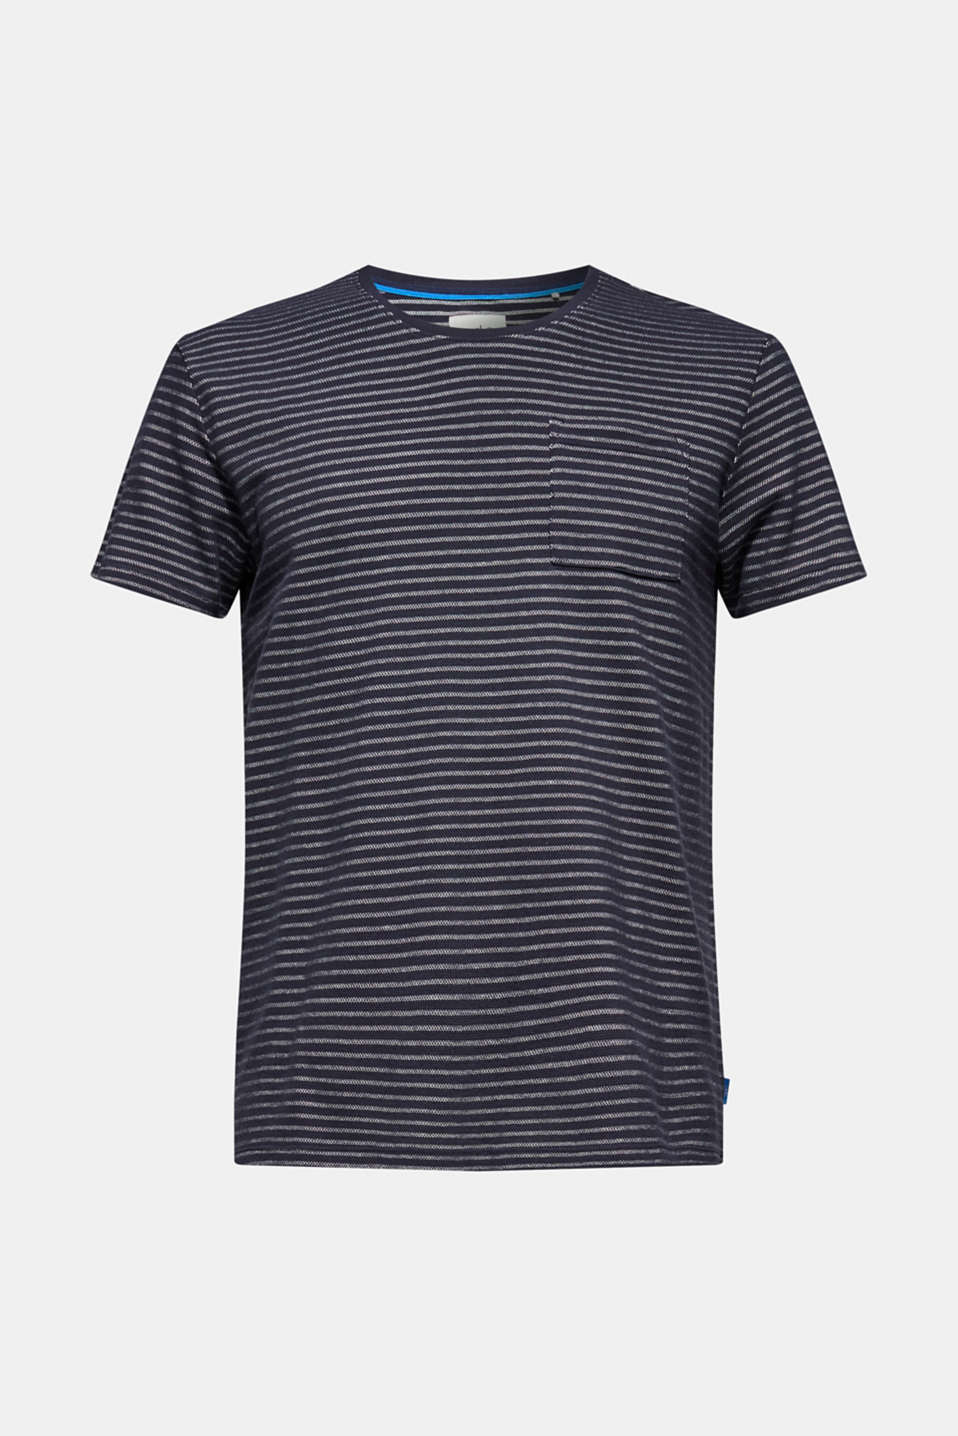 Striped piqué top made of 100% cotton, NAVY, detail image number 6